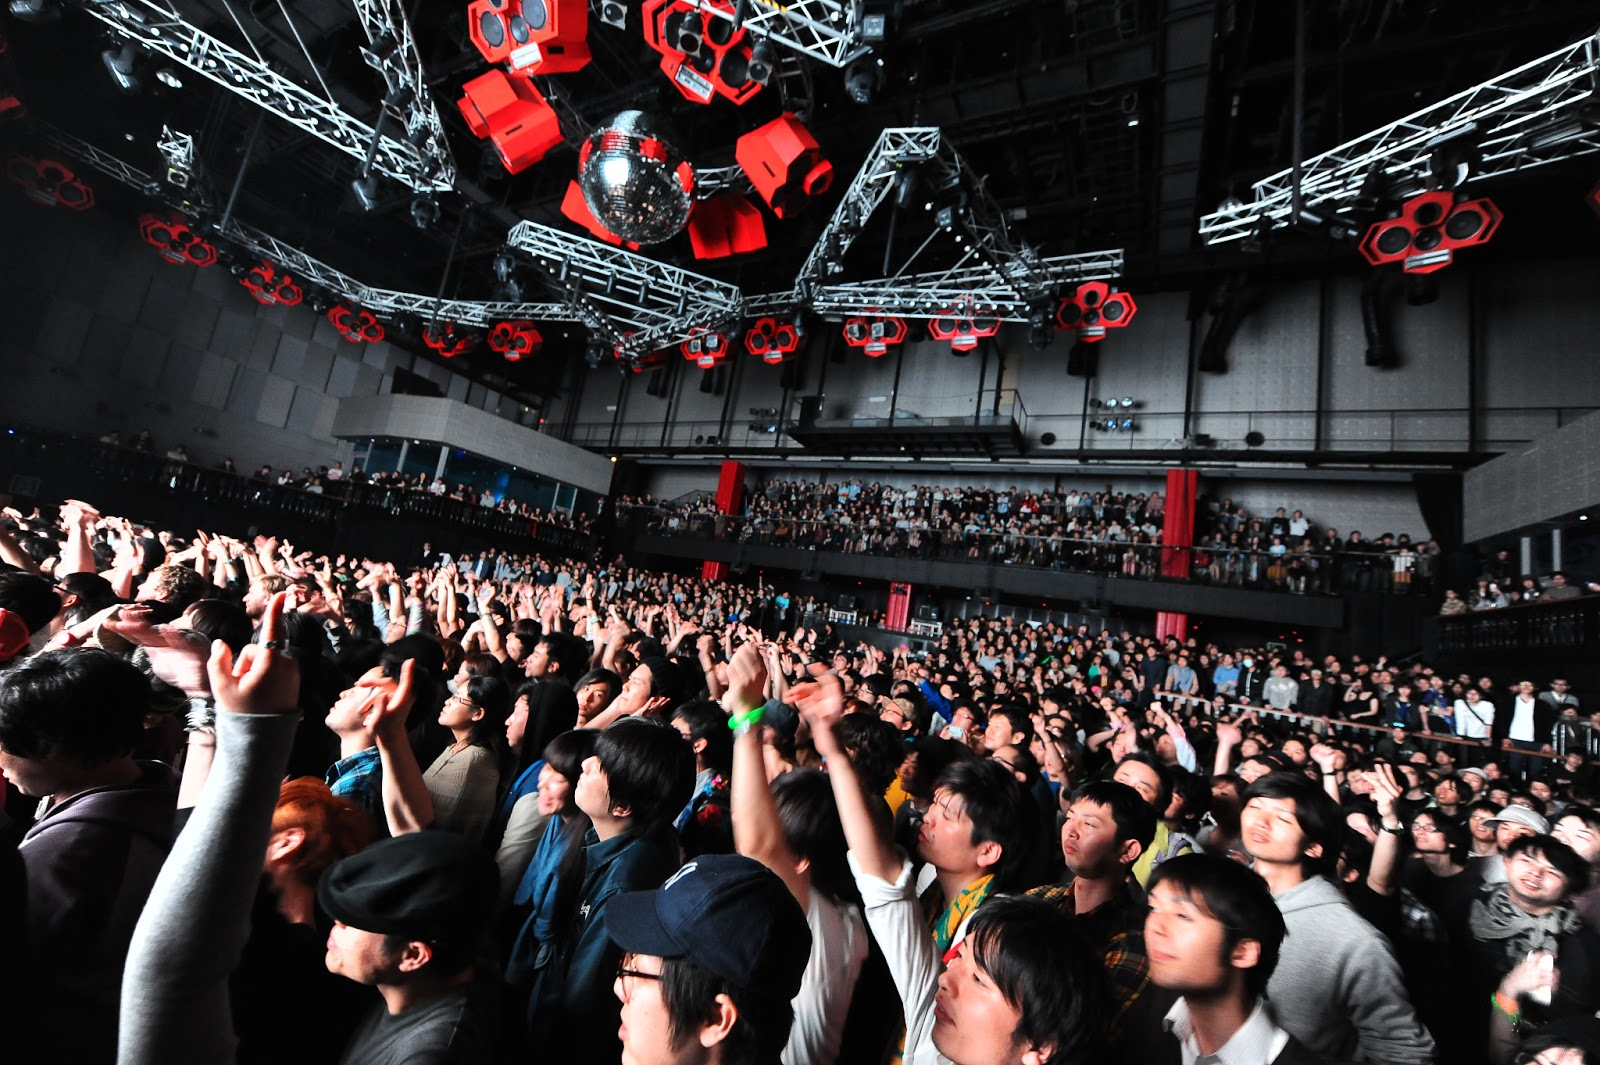 Ageha Tokyo Colossal Nightclub In Koto Biggest Club Of